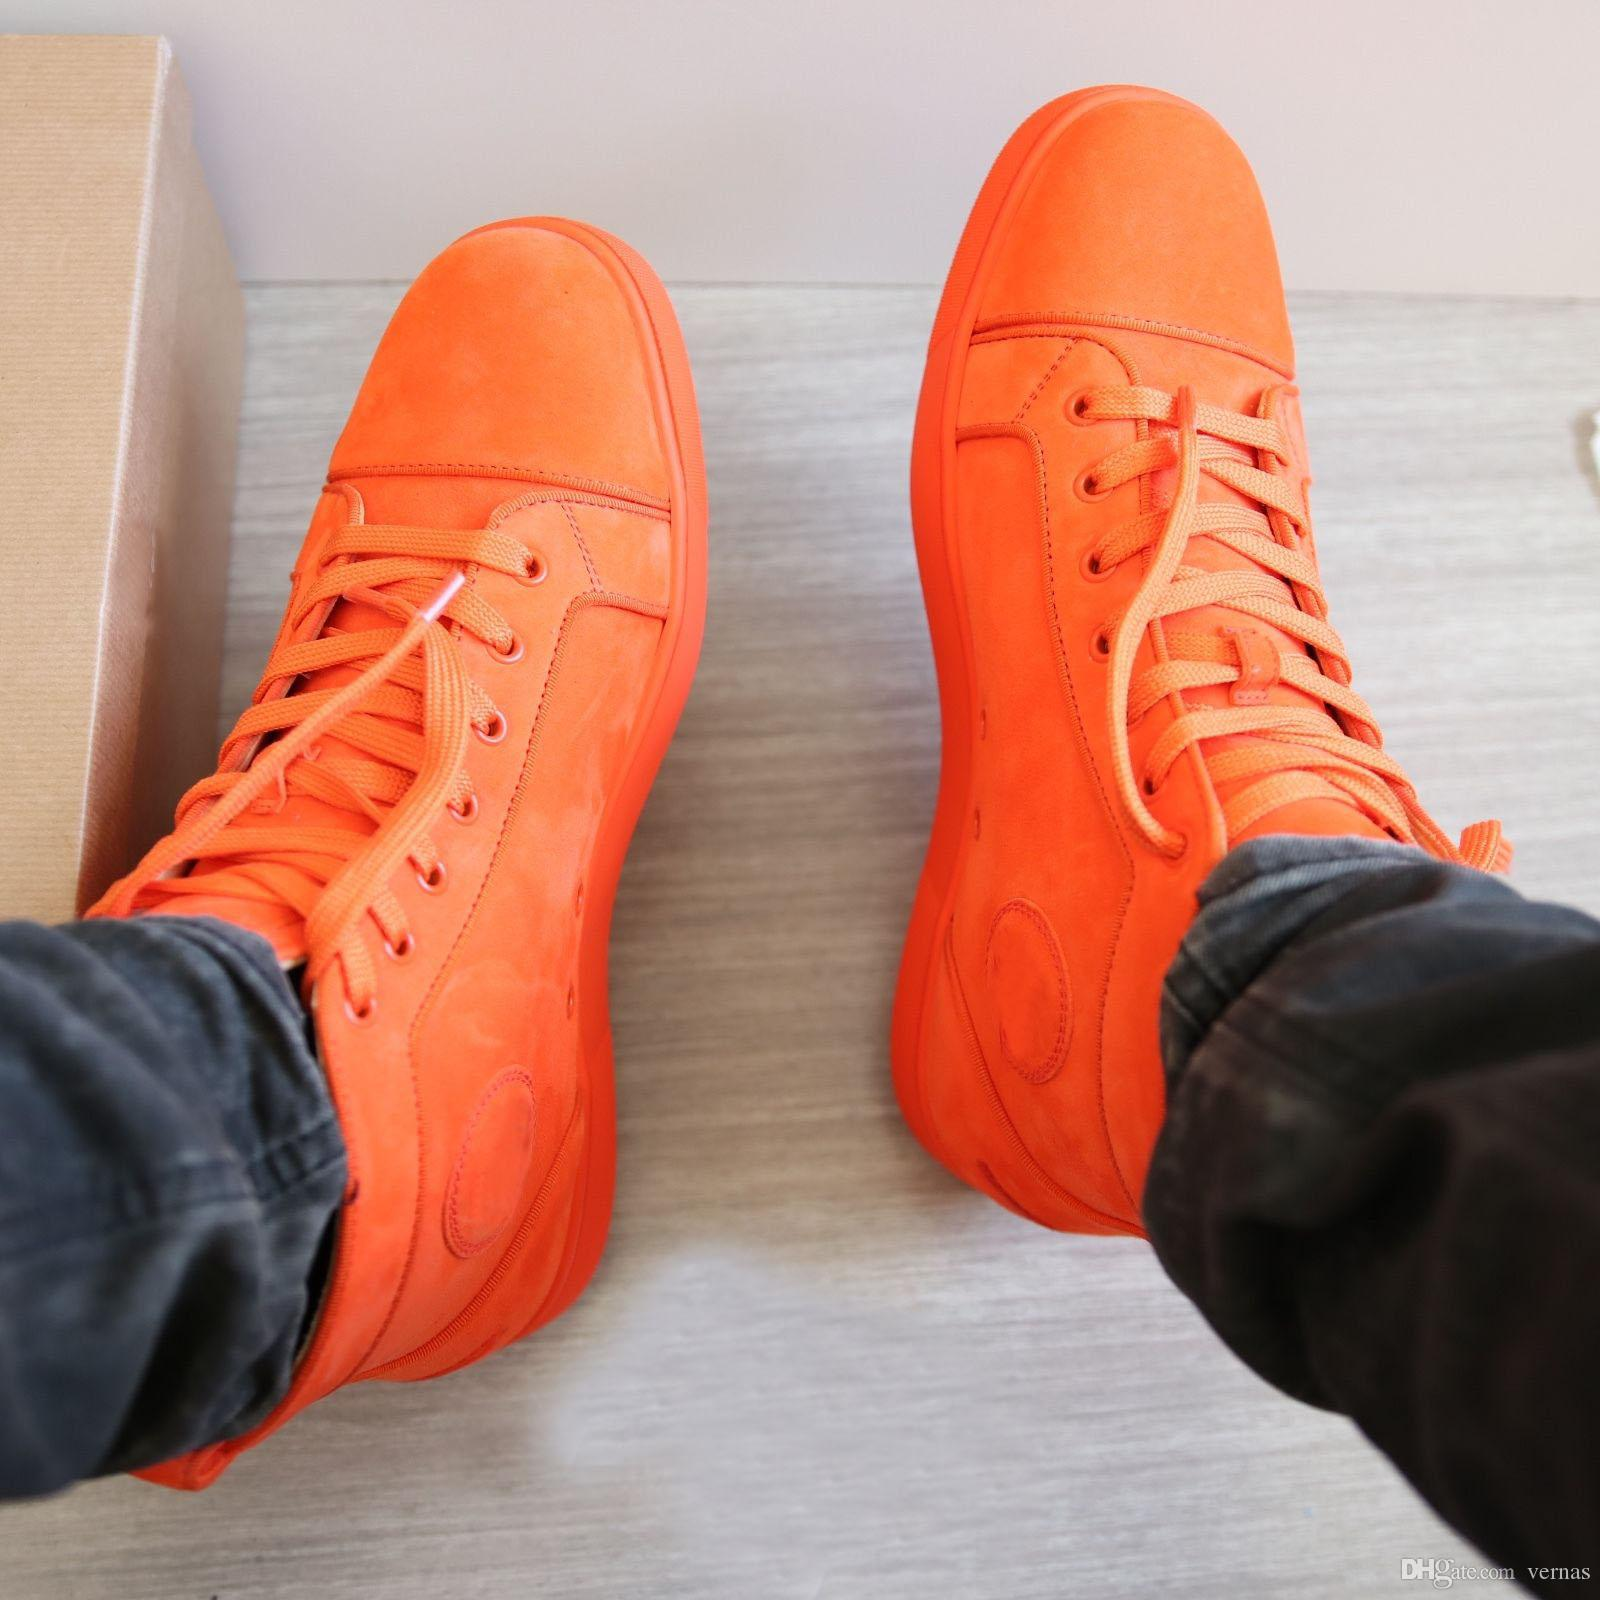 47 Mode Turnschuhe Super Leder Hightop Casual Trainer Größe 35 Suede Bottom Großhandel Party Männer Orange Frauen Schuhe Red Qualität Walking Dress Pn0Owk8X